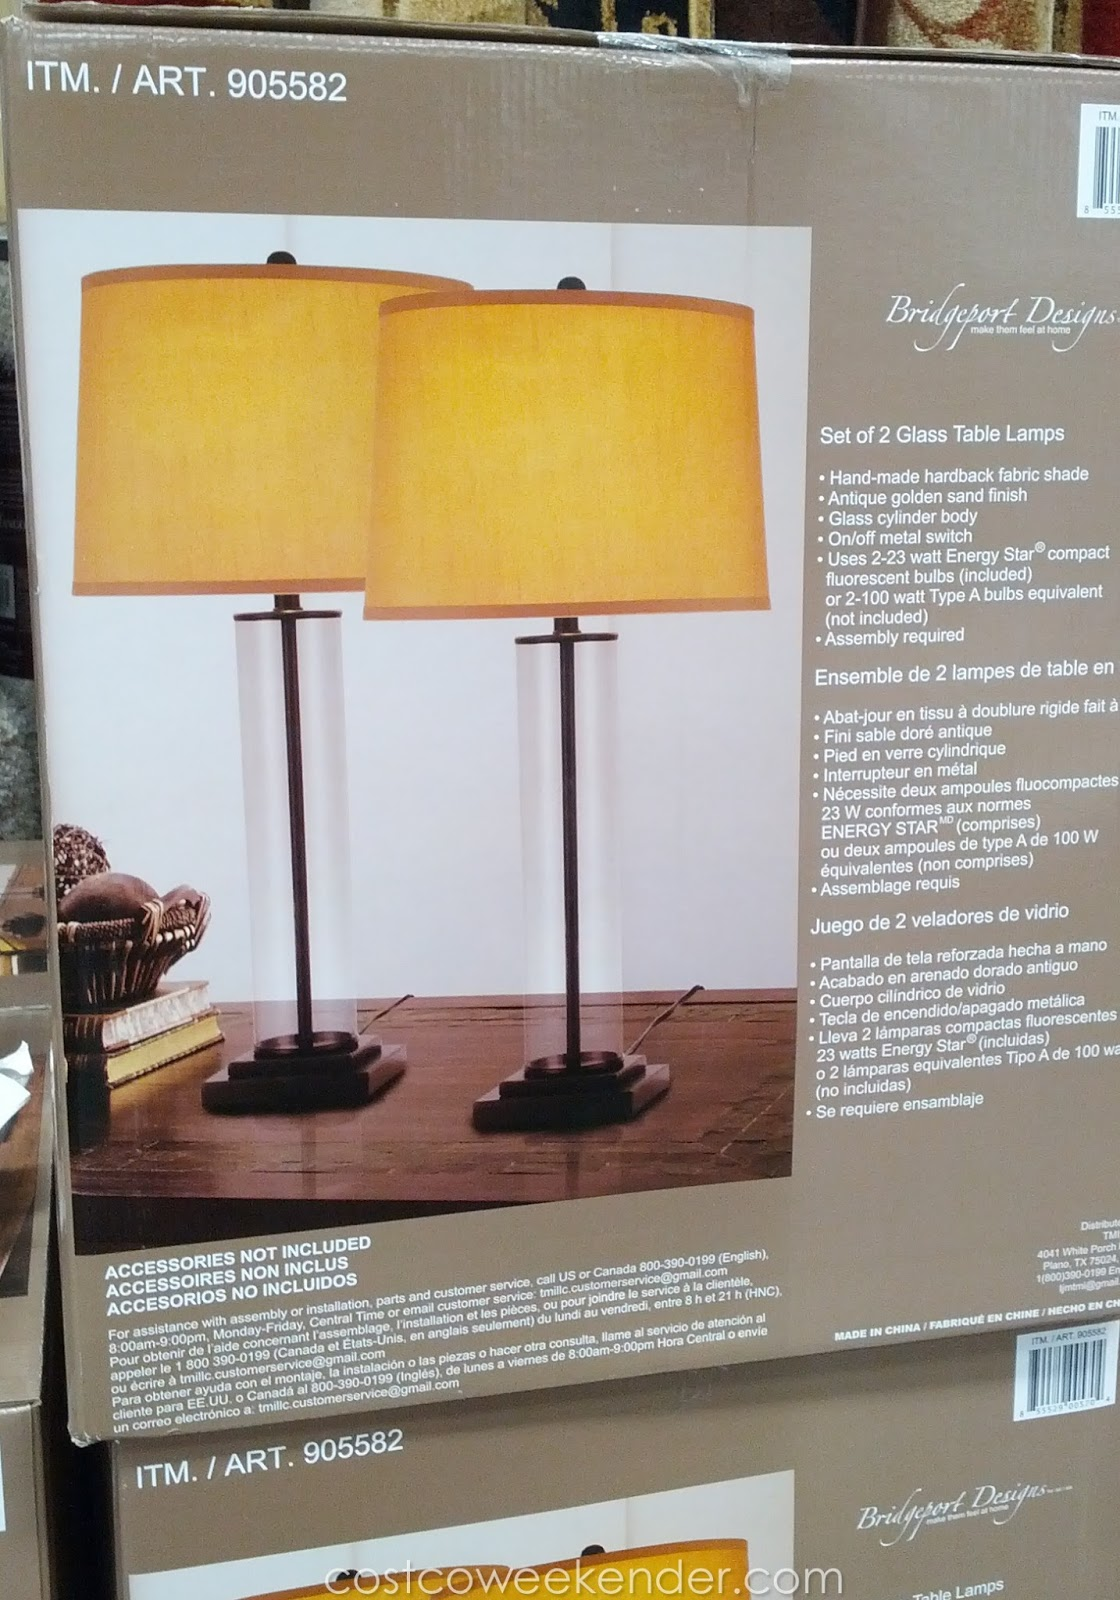 Name:  bridgeport-designs-glass-cylinder-table-lamps-set-of-2-costco.jpg Views: 2039 Size:  313.6 KB